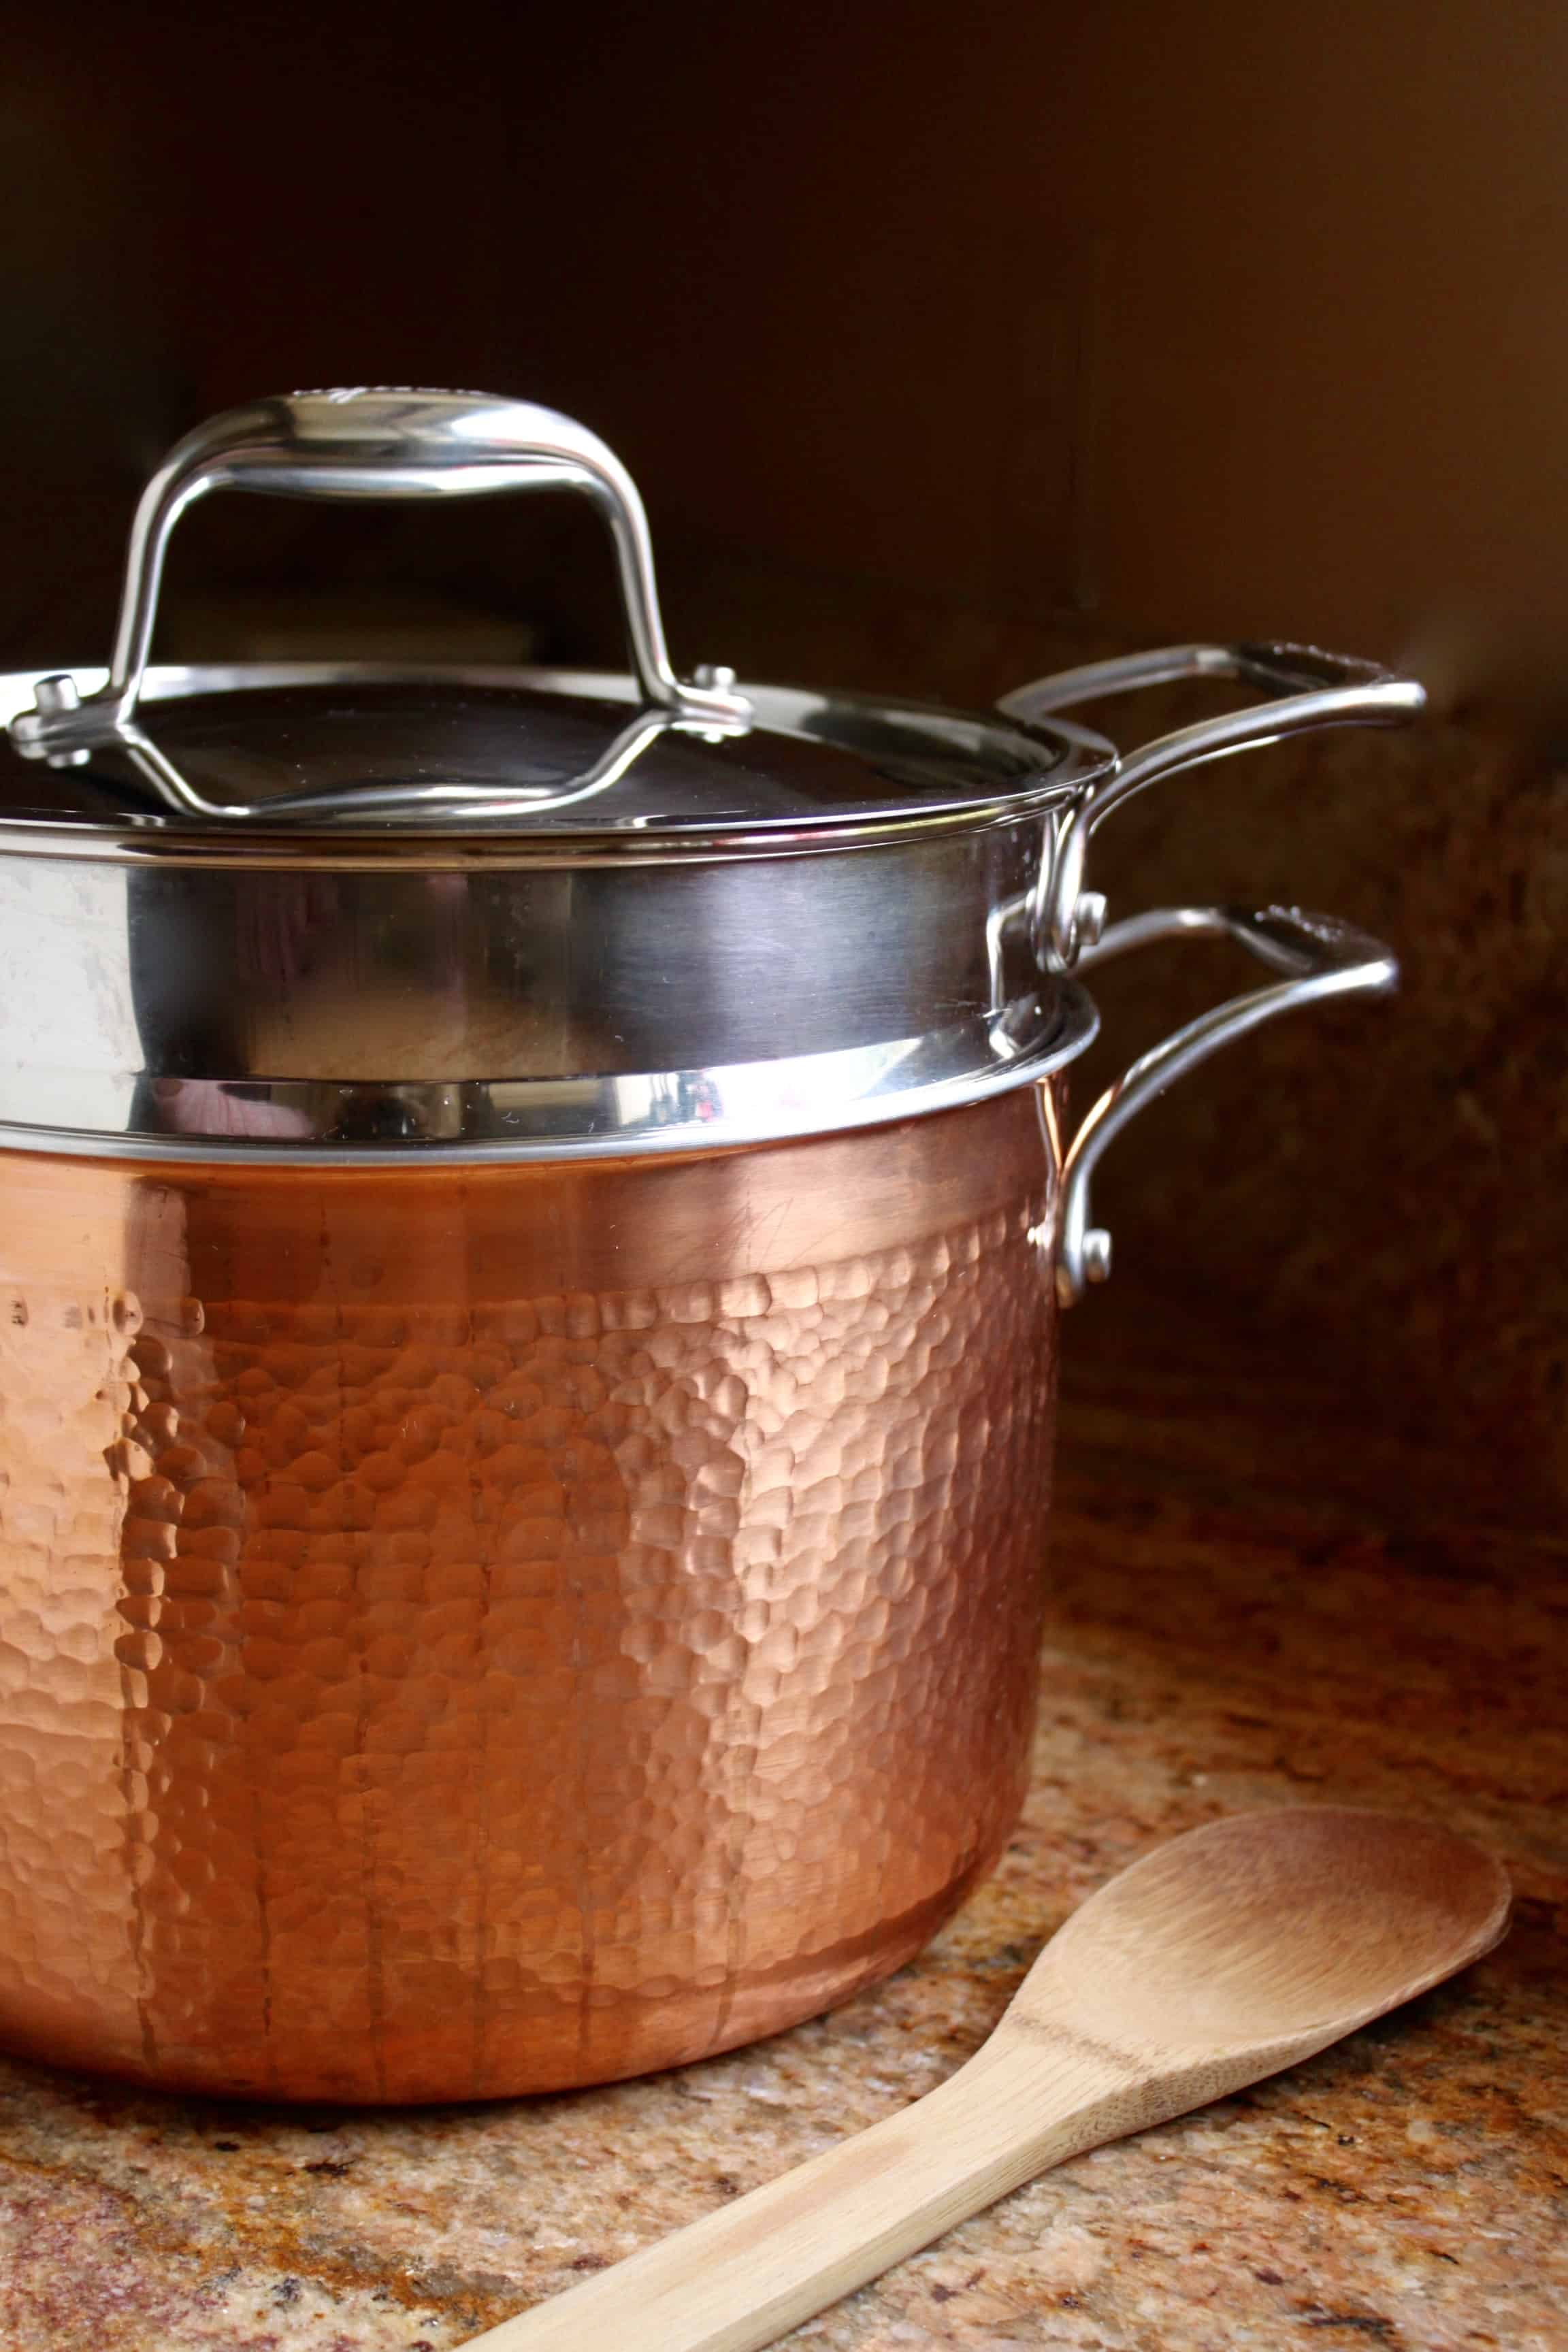 Lagostina review: Copper Pastaiola Pot with a wooden spoon